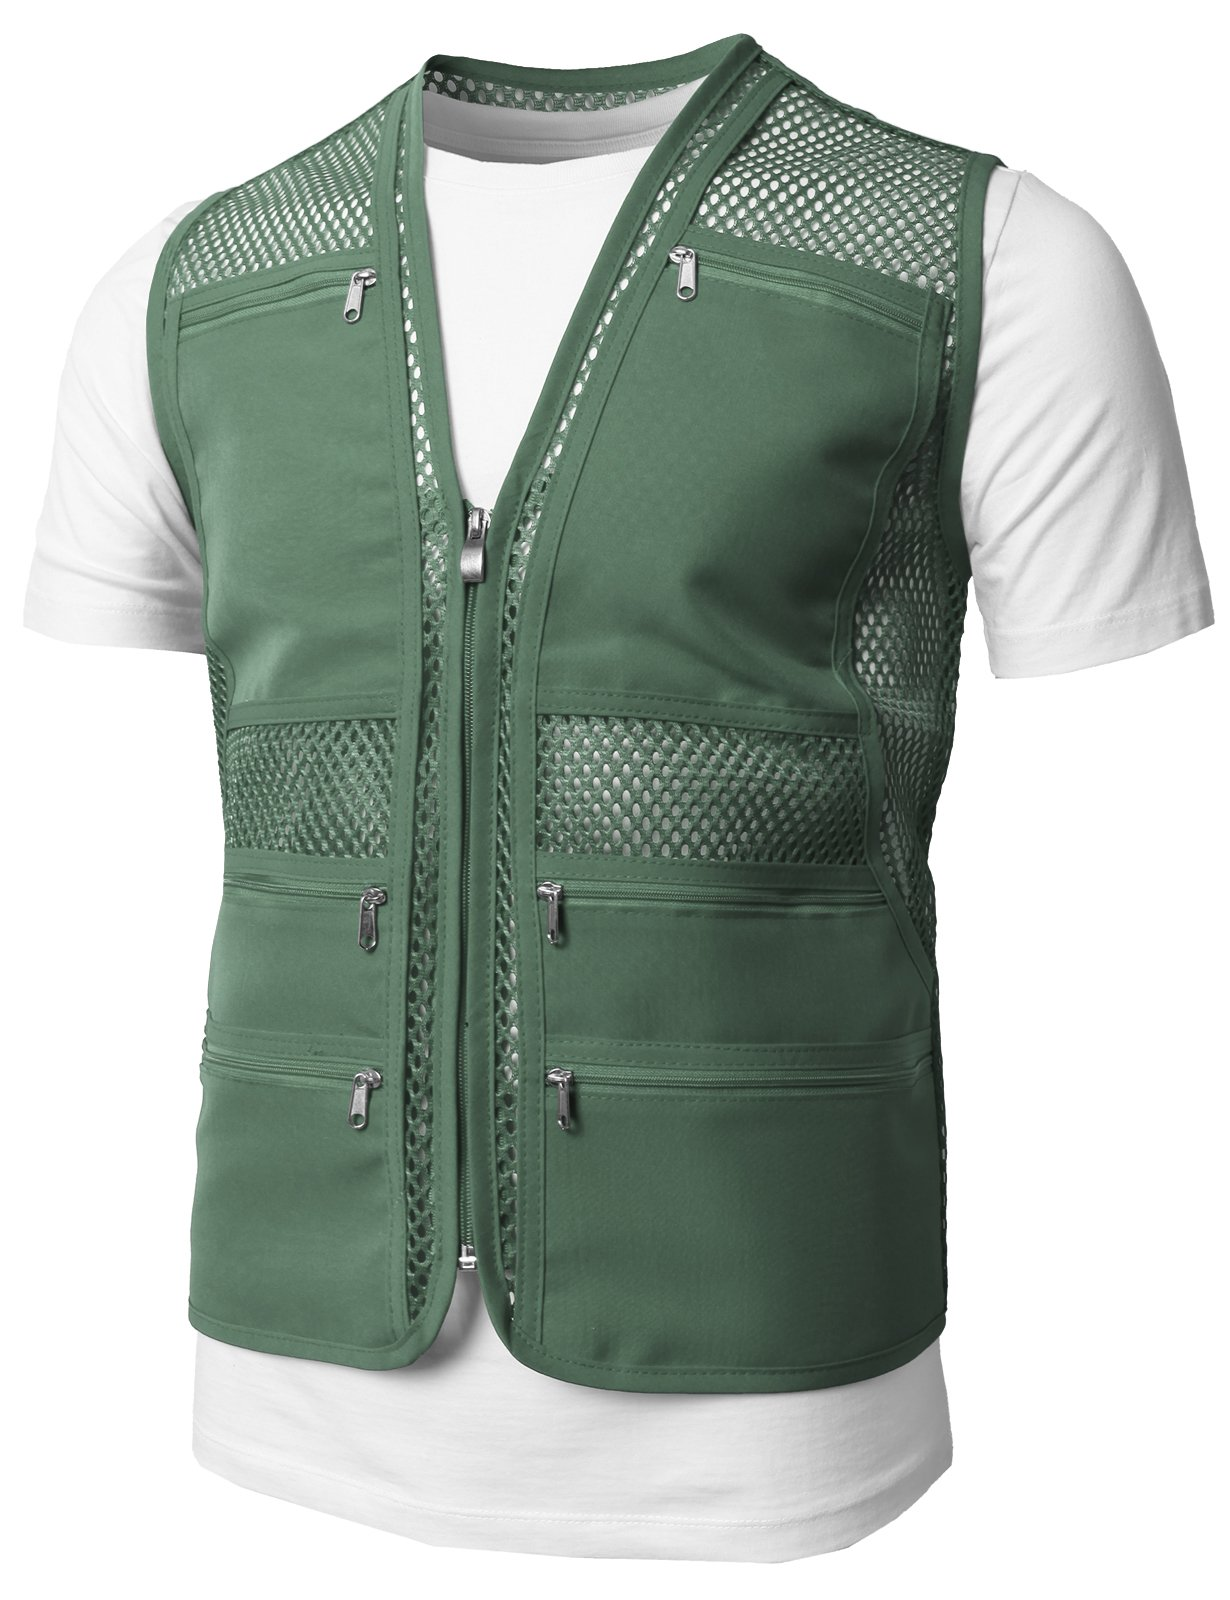 H2H Mens Casual Work Utility Hunting Travels Sports Mesh Vest With Pockets Green US L/Asia XL (KMOV086)